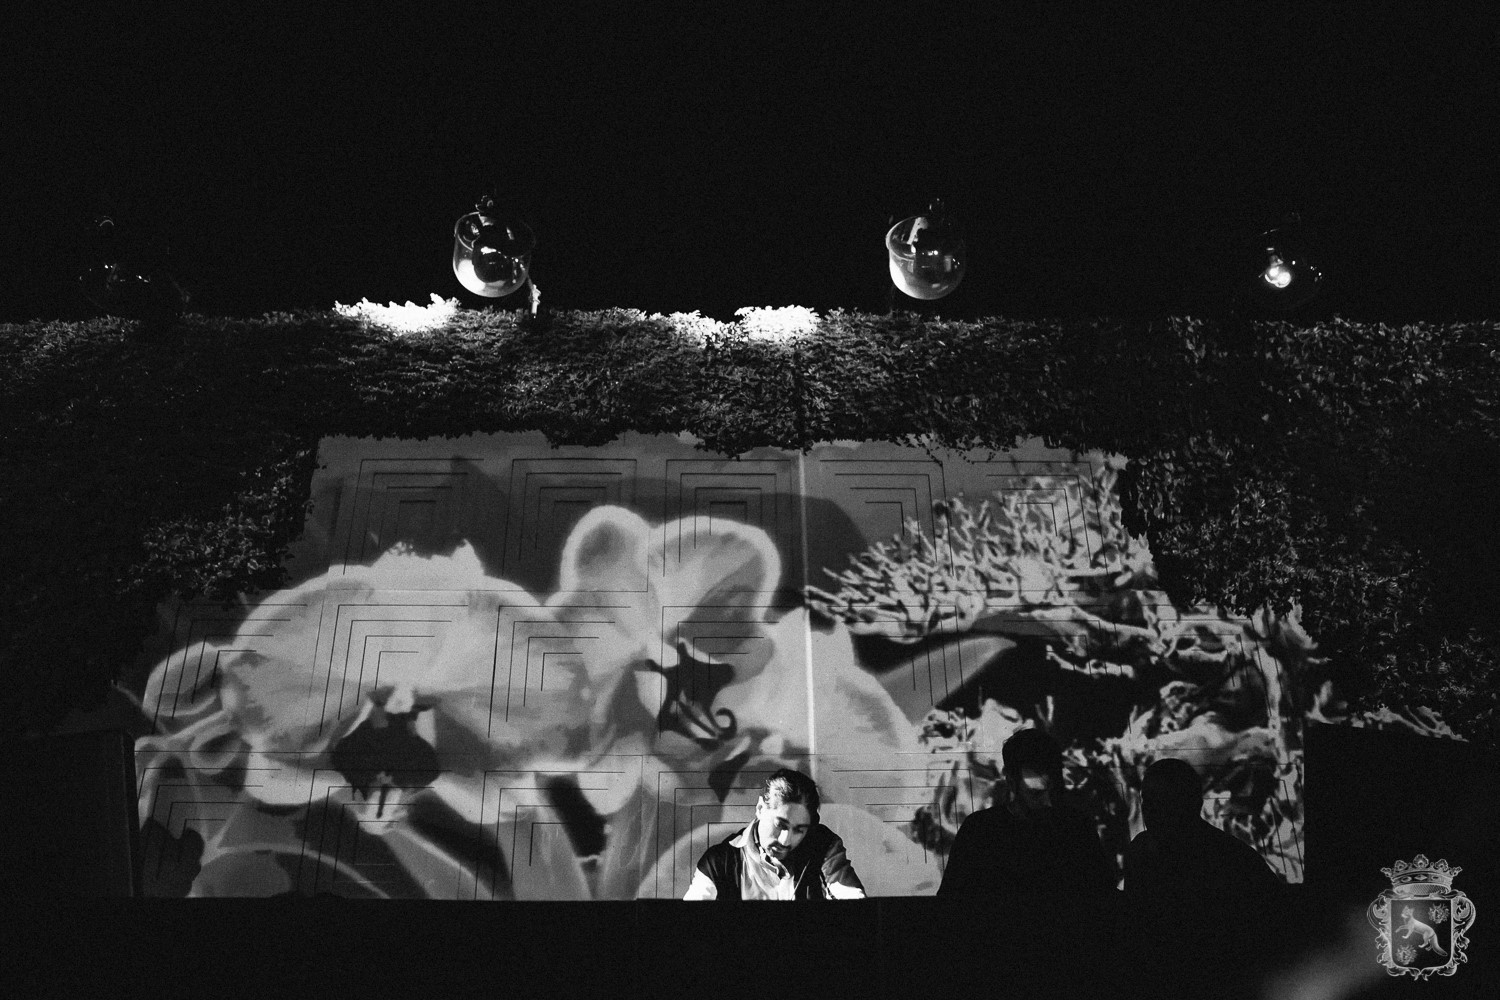 Brooklyn MIrage - Projection Mapped 2